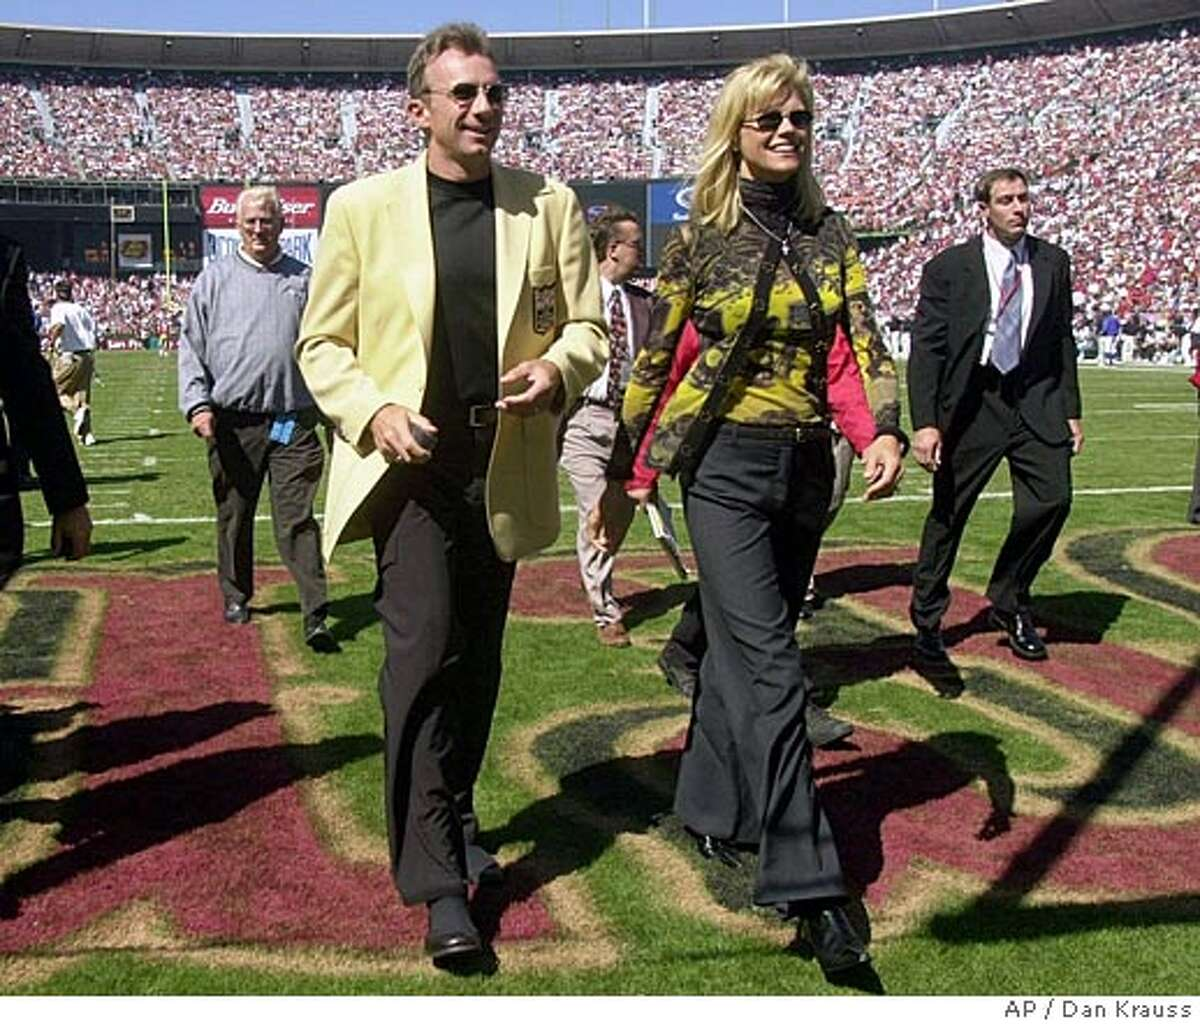 Former San Francisco 49ers quarterback Joe Montana walks off the field with his wife, Jennifer, after a halftime ceremony at 3Com Park in San Francisco honoring Montana and two other former 49ers Sunday, Sept. 10, 2000. (AP Photo/Dan Krauss)